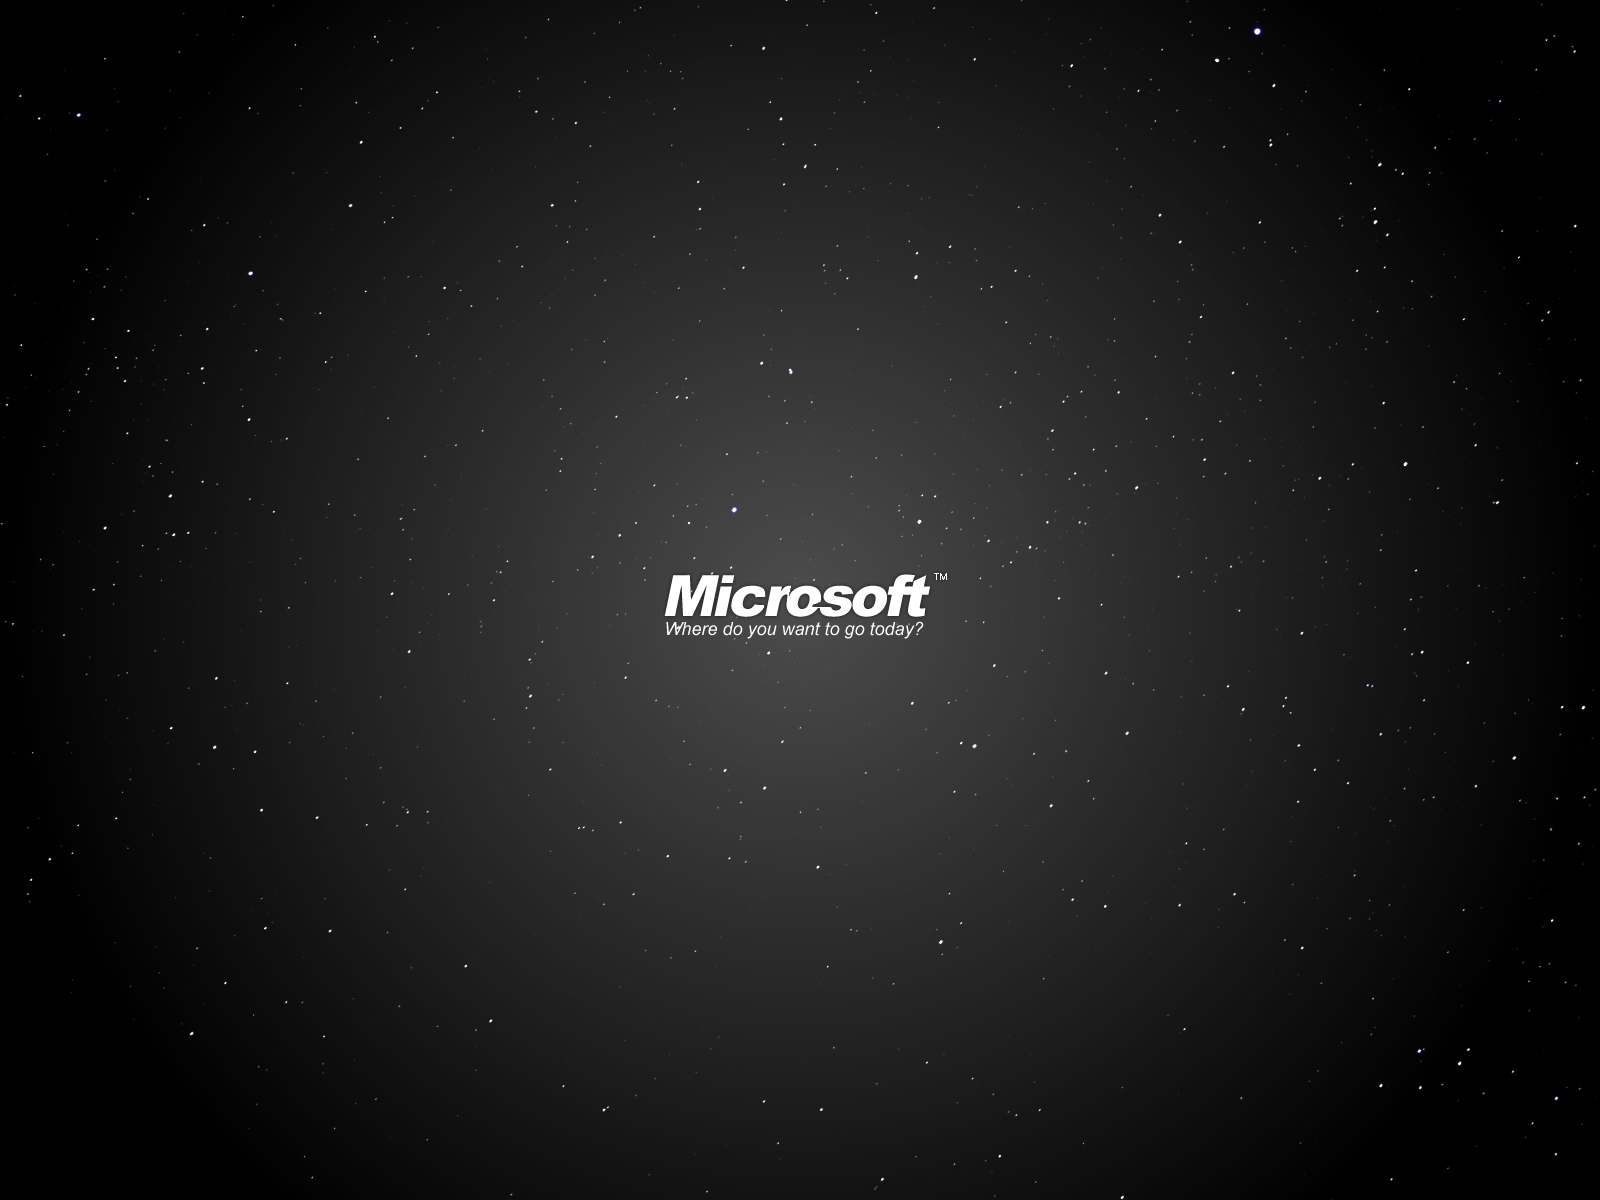 backgrounds microsoft